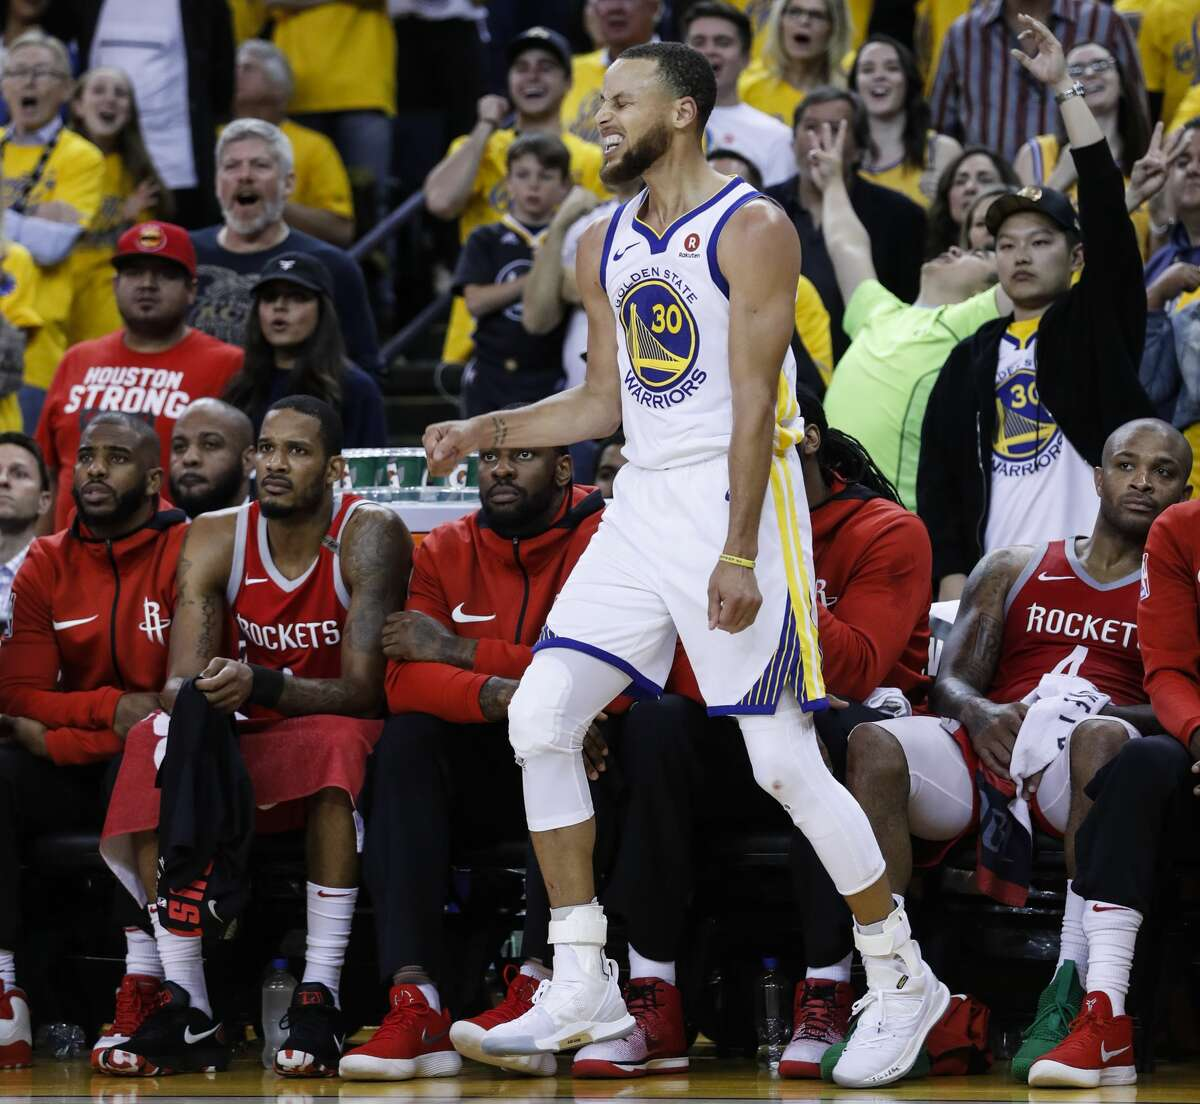 Golden State Warriors guard Stephen Curry (30) reacts after hitting a 3-pointer against the Houston Rockets during the fourth quarter of Game 6 of the NBA Western Conference Finals at Oracle Arena, Saturday, May 26, 2018, in Oakland. ( Karen Warren / Houston Chronicle )